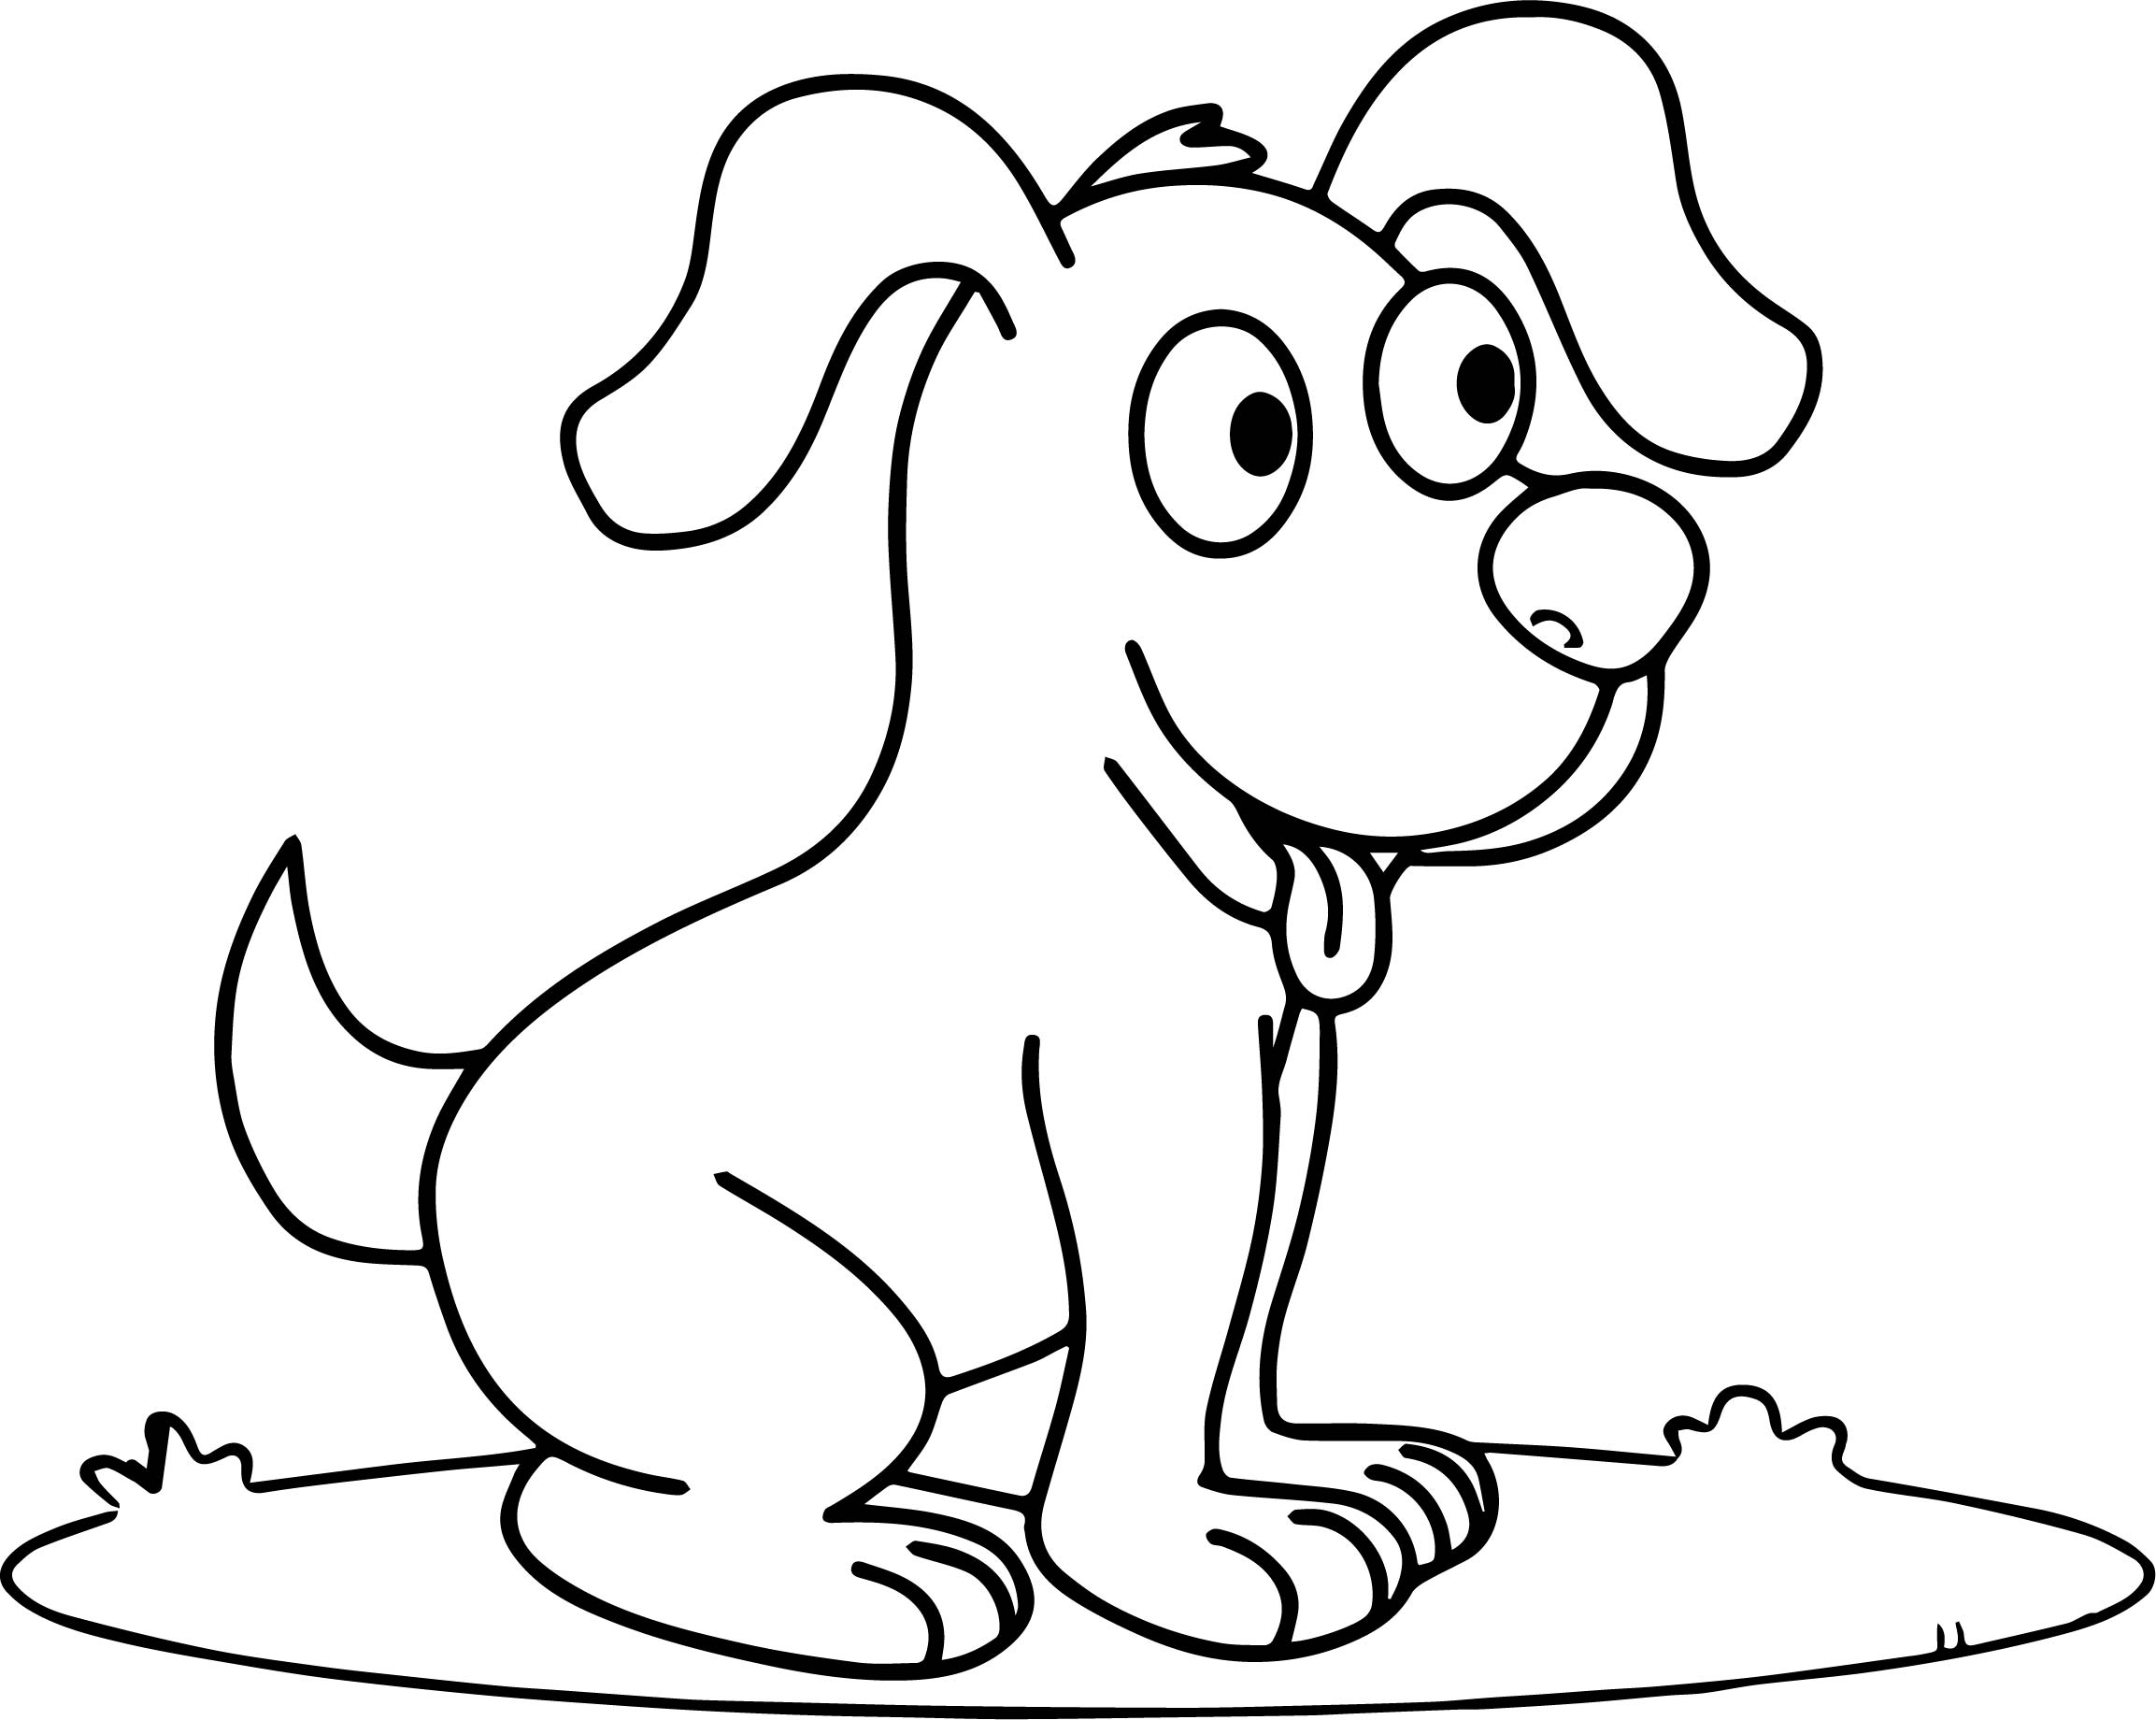 Cute Happy Smiling Puppy Puppy Dog Coloring Page | Wecoloringpage